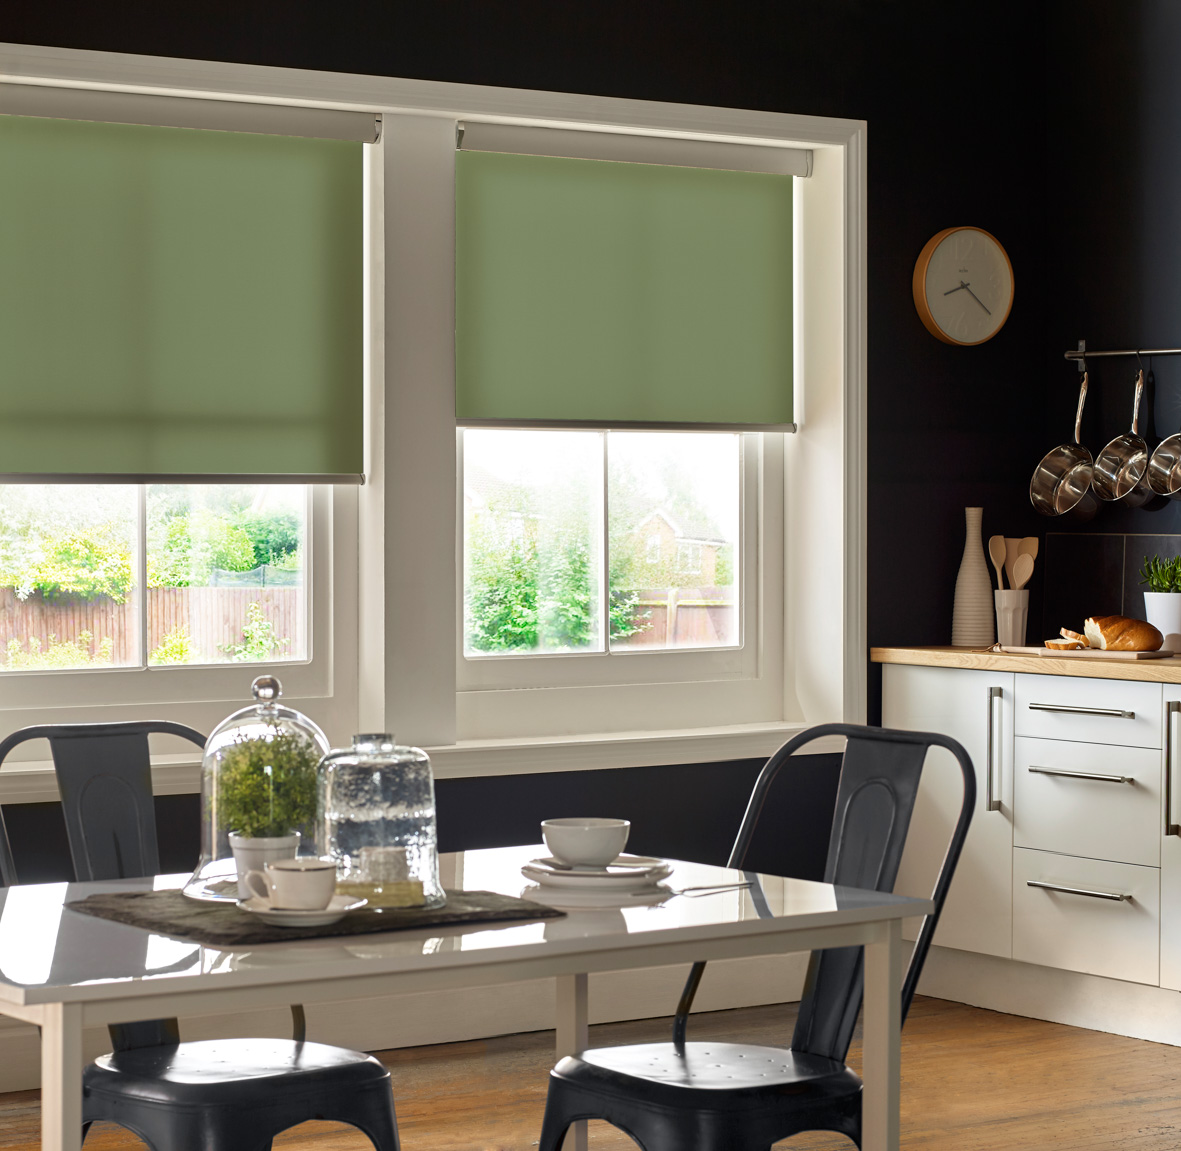 Window blinds Coventry. Green roller blinds in kitchen window. Dark walls and dining table.